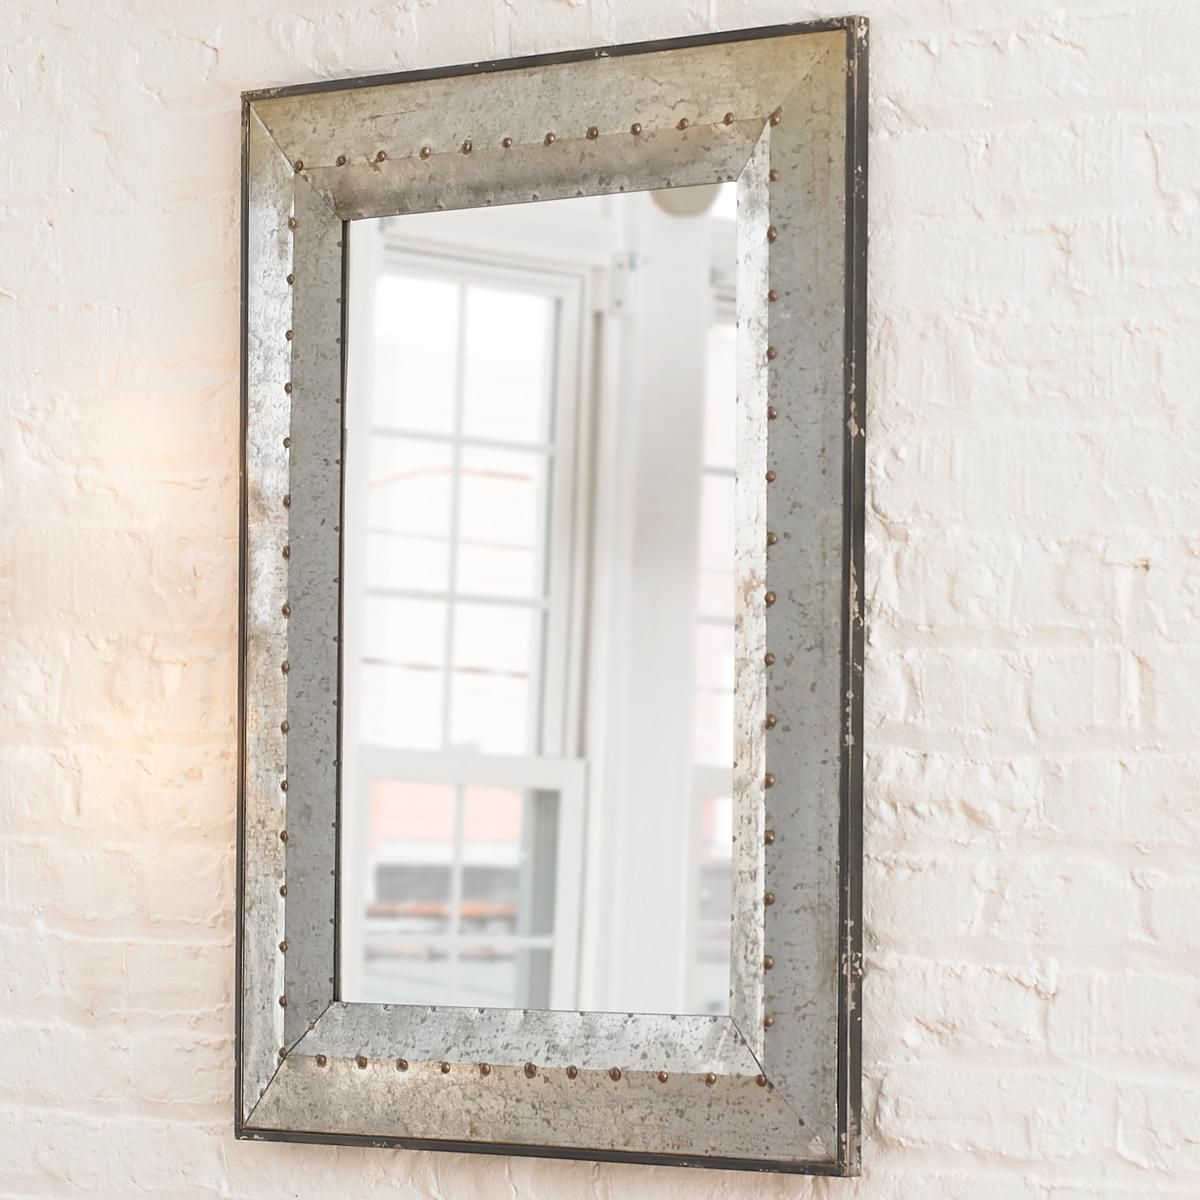 Mordern Minimalist Mirror | Modern Rustic Luxe | Industrial For Booth Reclaimed Wall Mirrors Accent (Image 11 of 20)